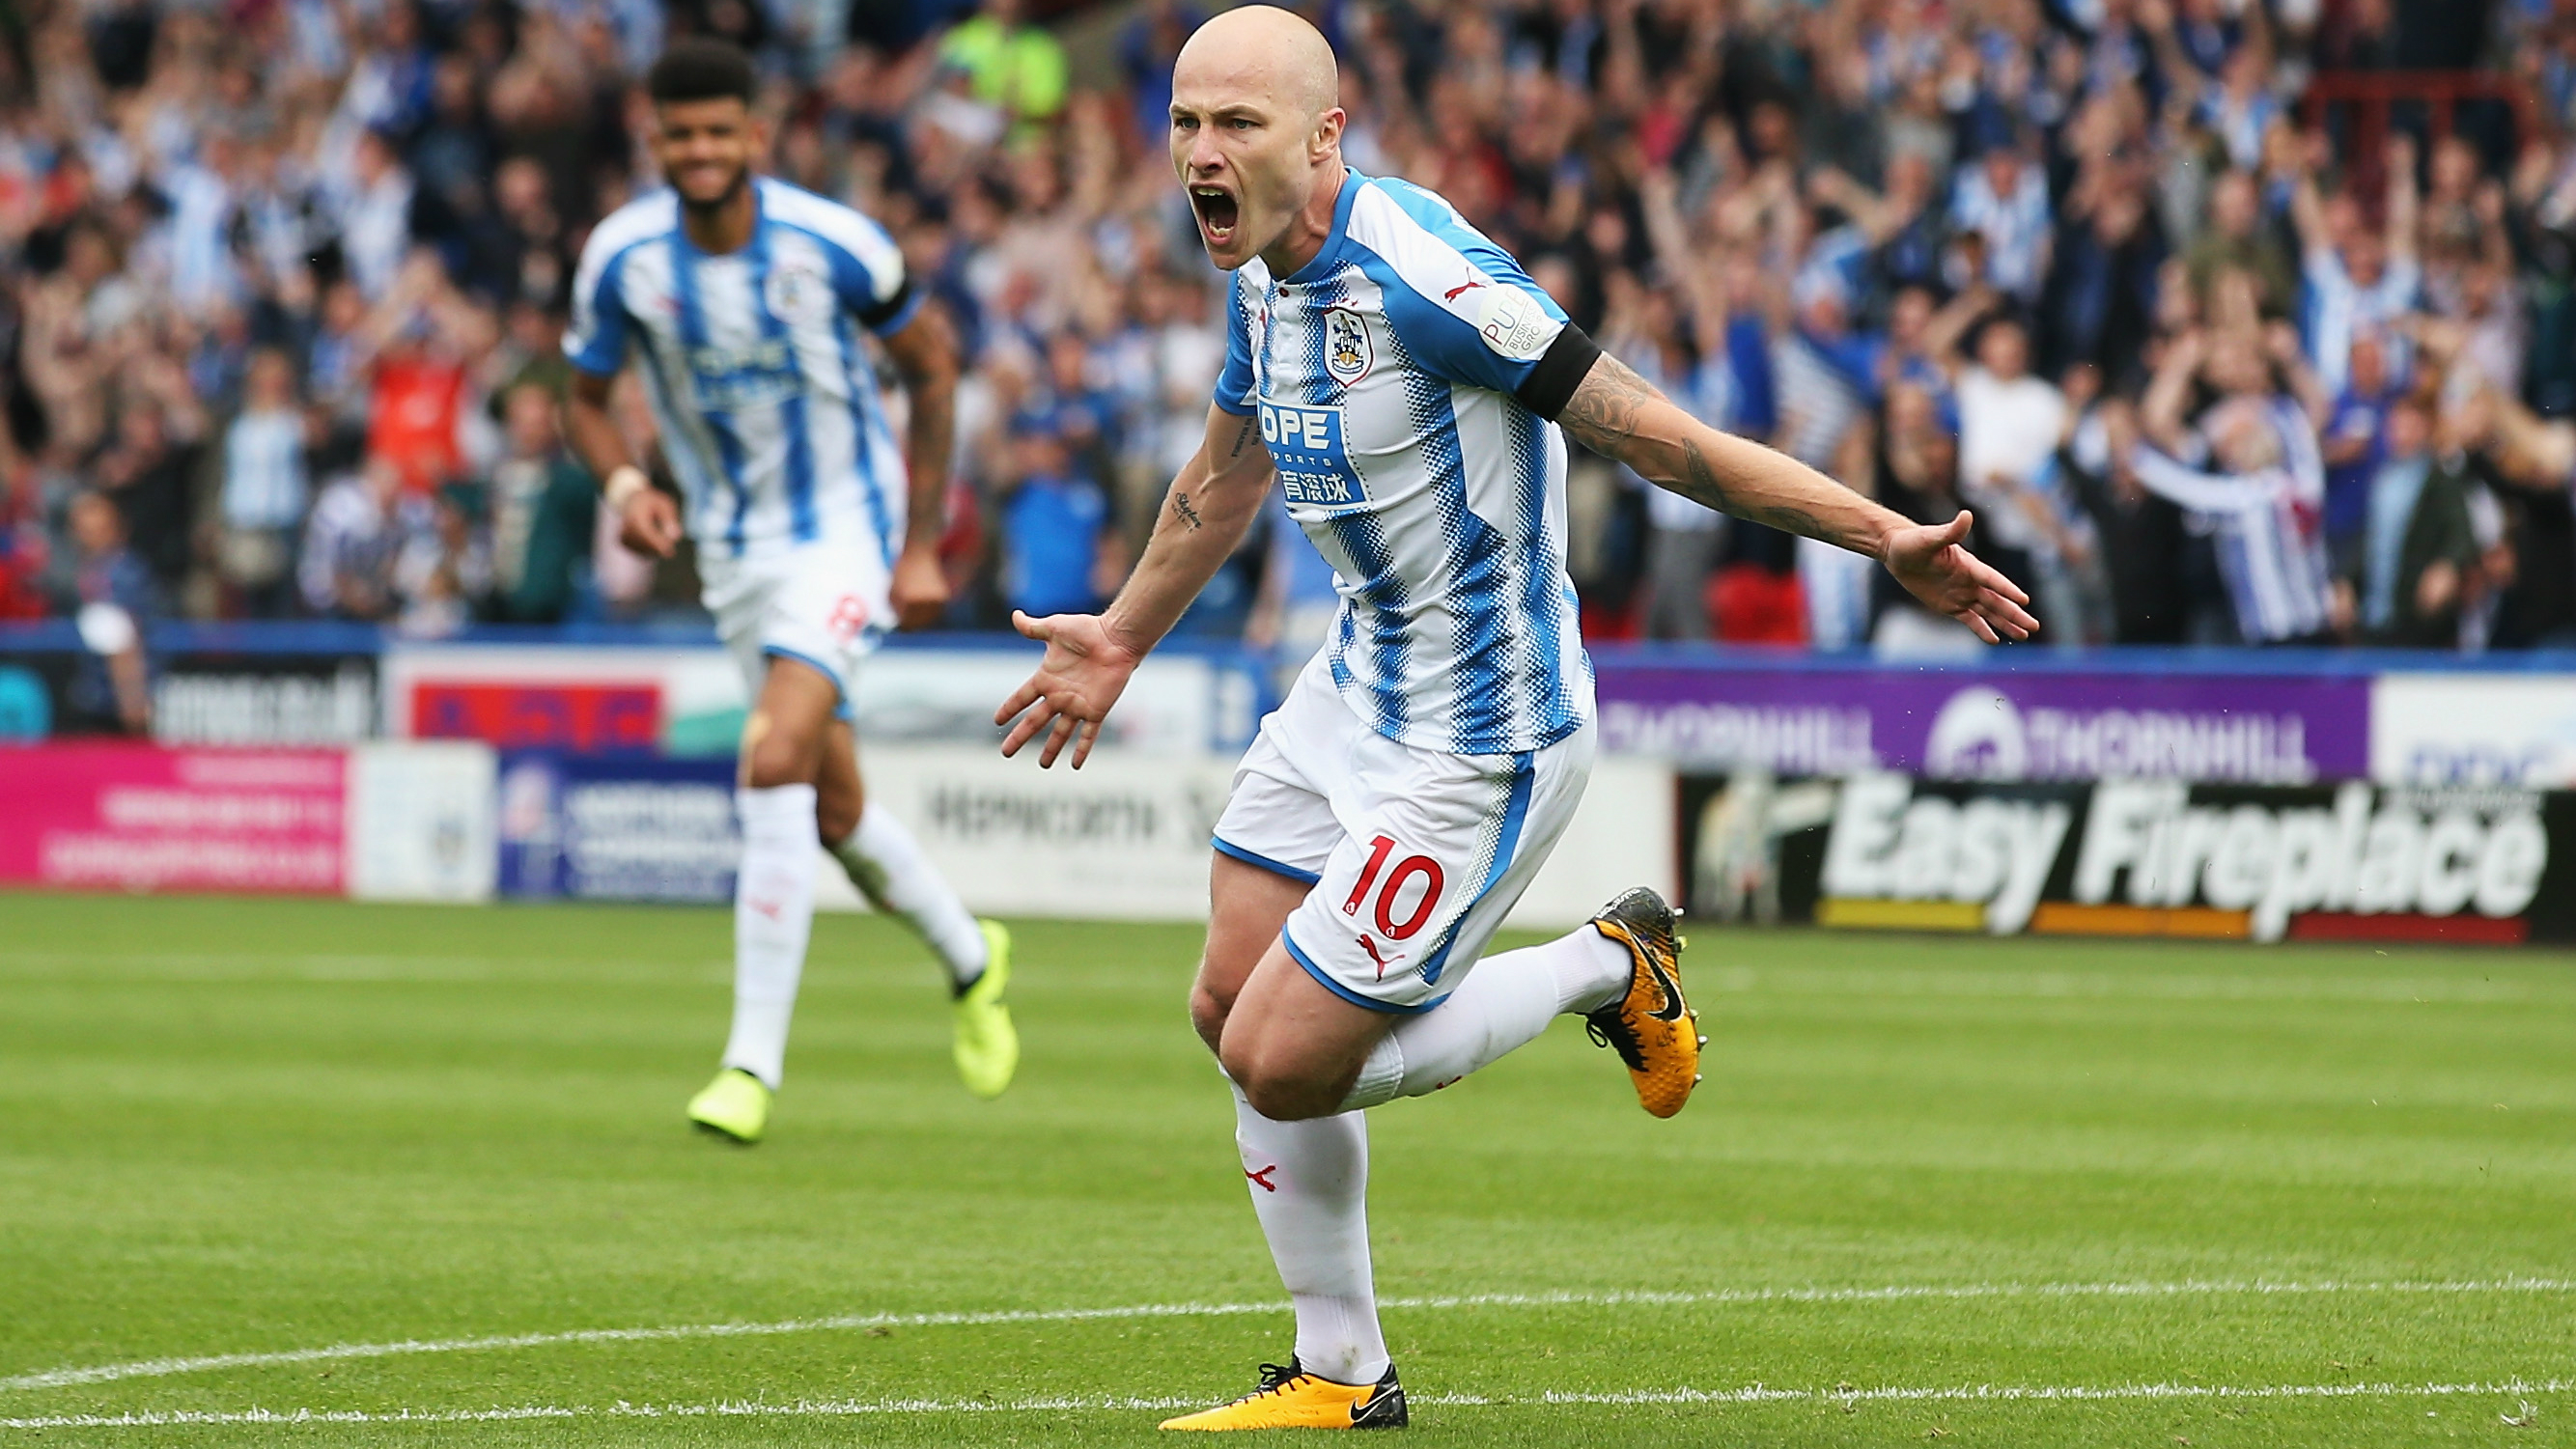 Aaron Mooy celebrates after scoring a superb winner for Huddersfield Town in the EPL against Newcastle United.